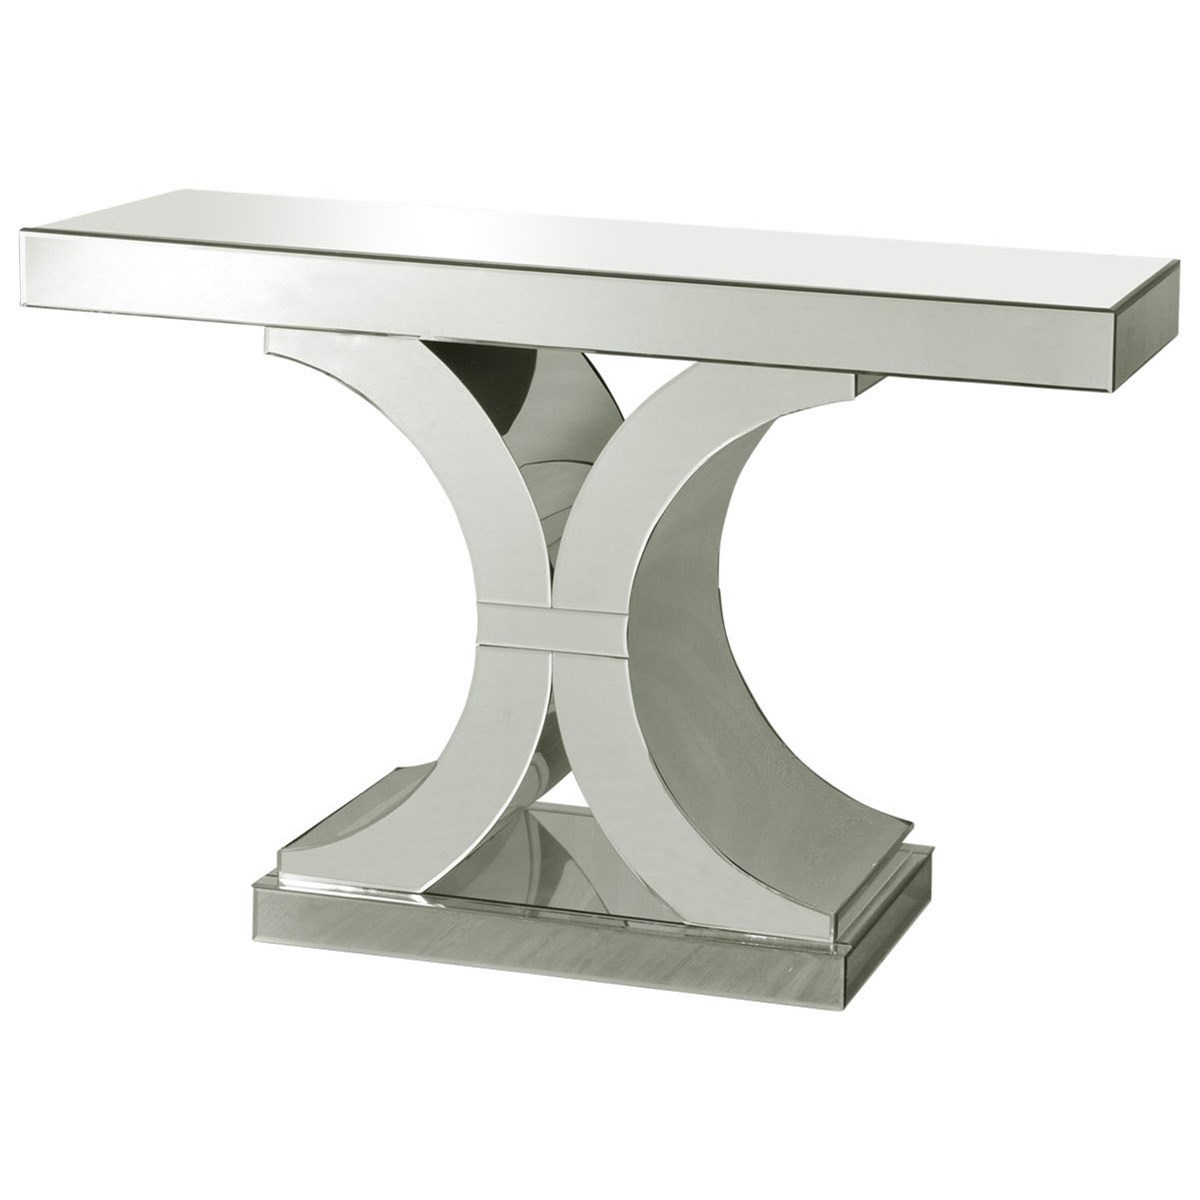 Occasional Tables Chanel Clear Glass Console Table by StyleCraft at Alison Craig Home Furnishings